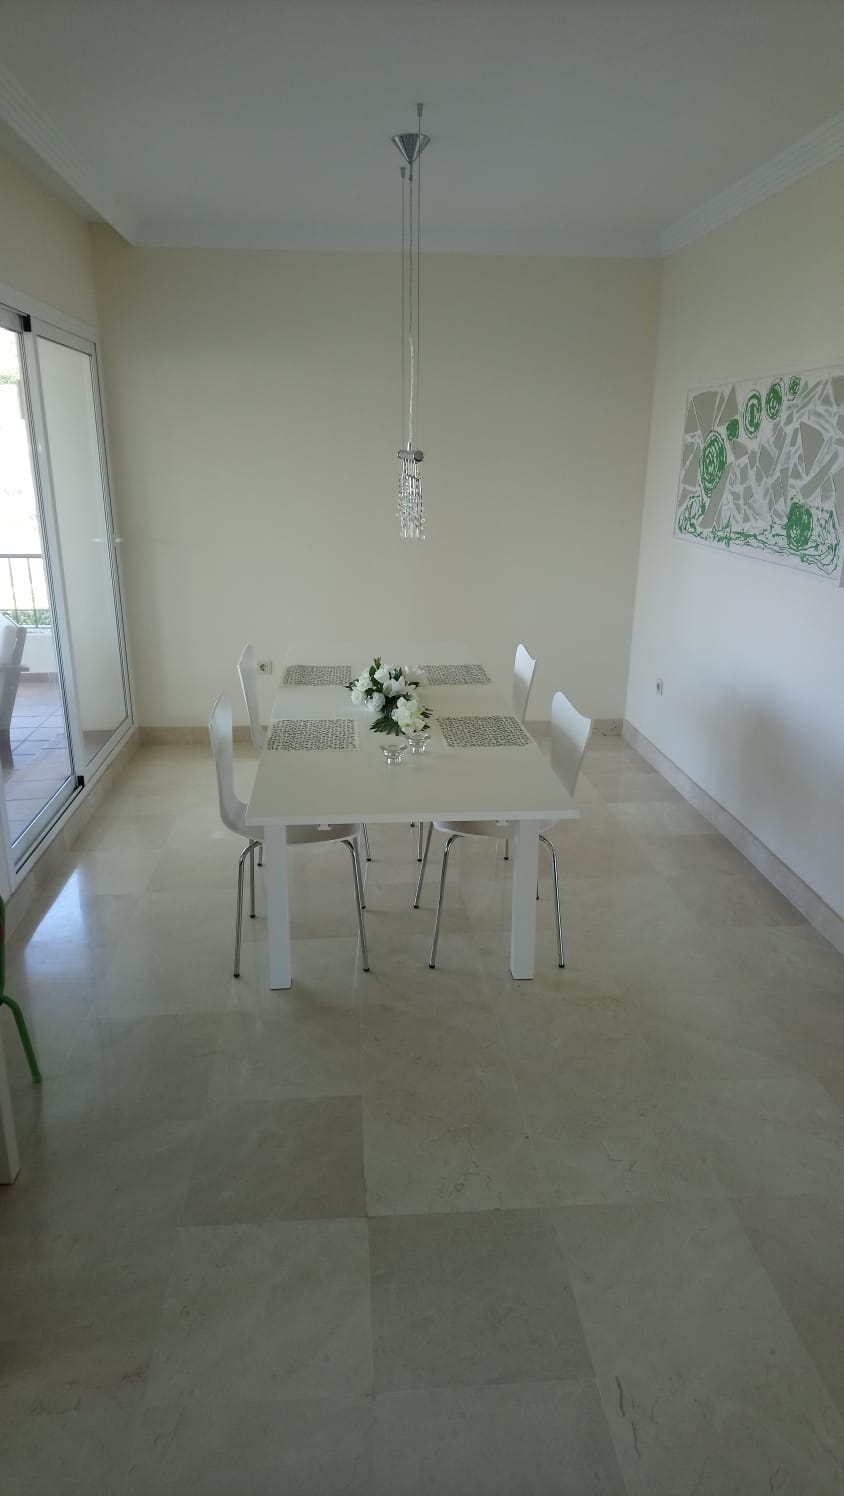 2 bedroom apartment for rent near Selwo park in Estepona - mibgroup.es